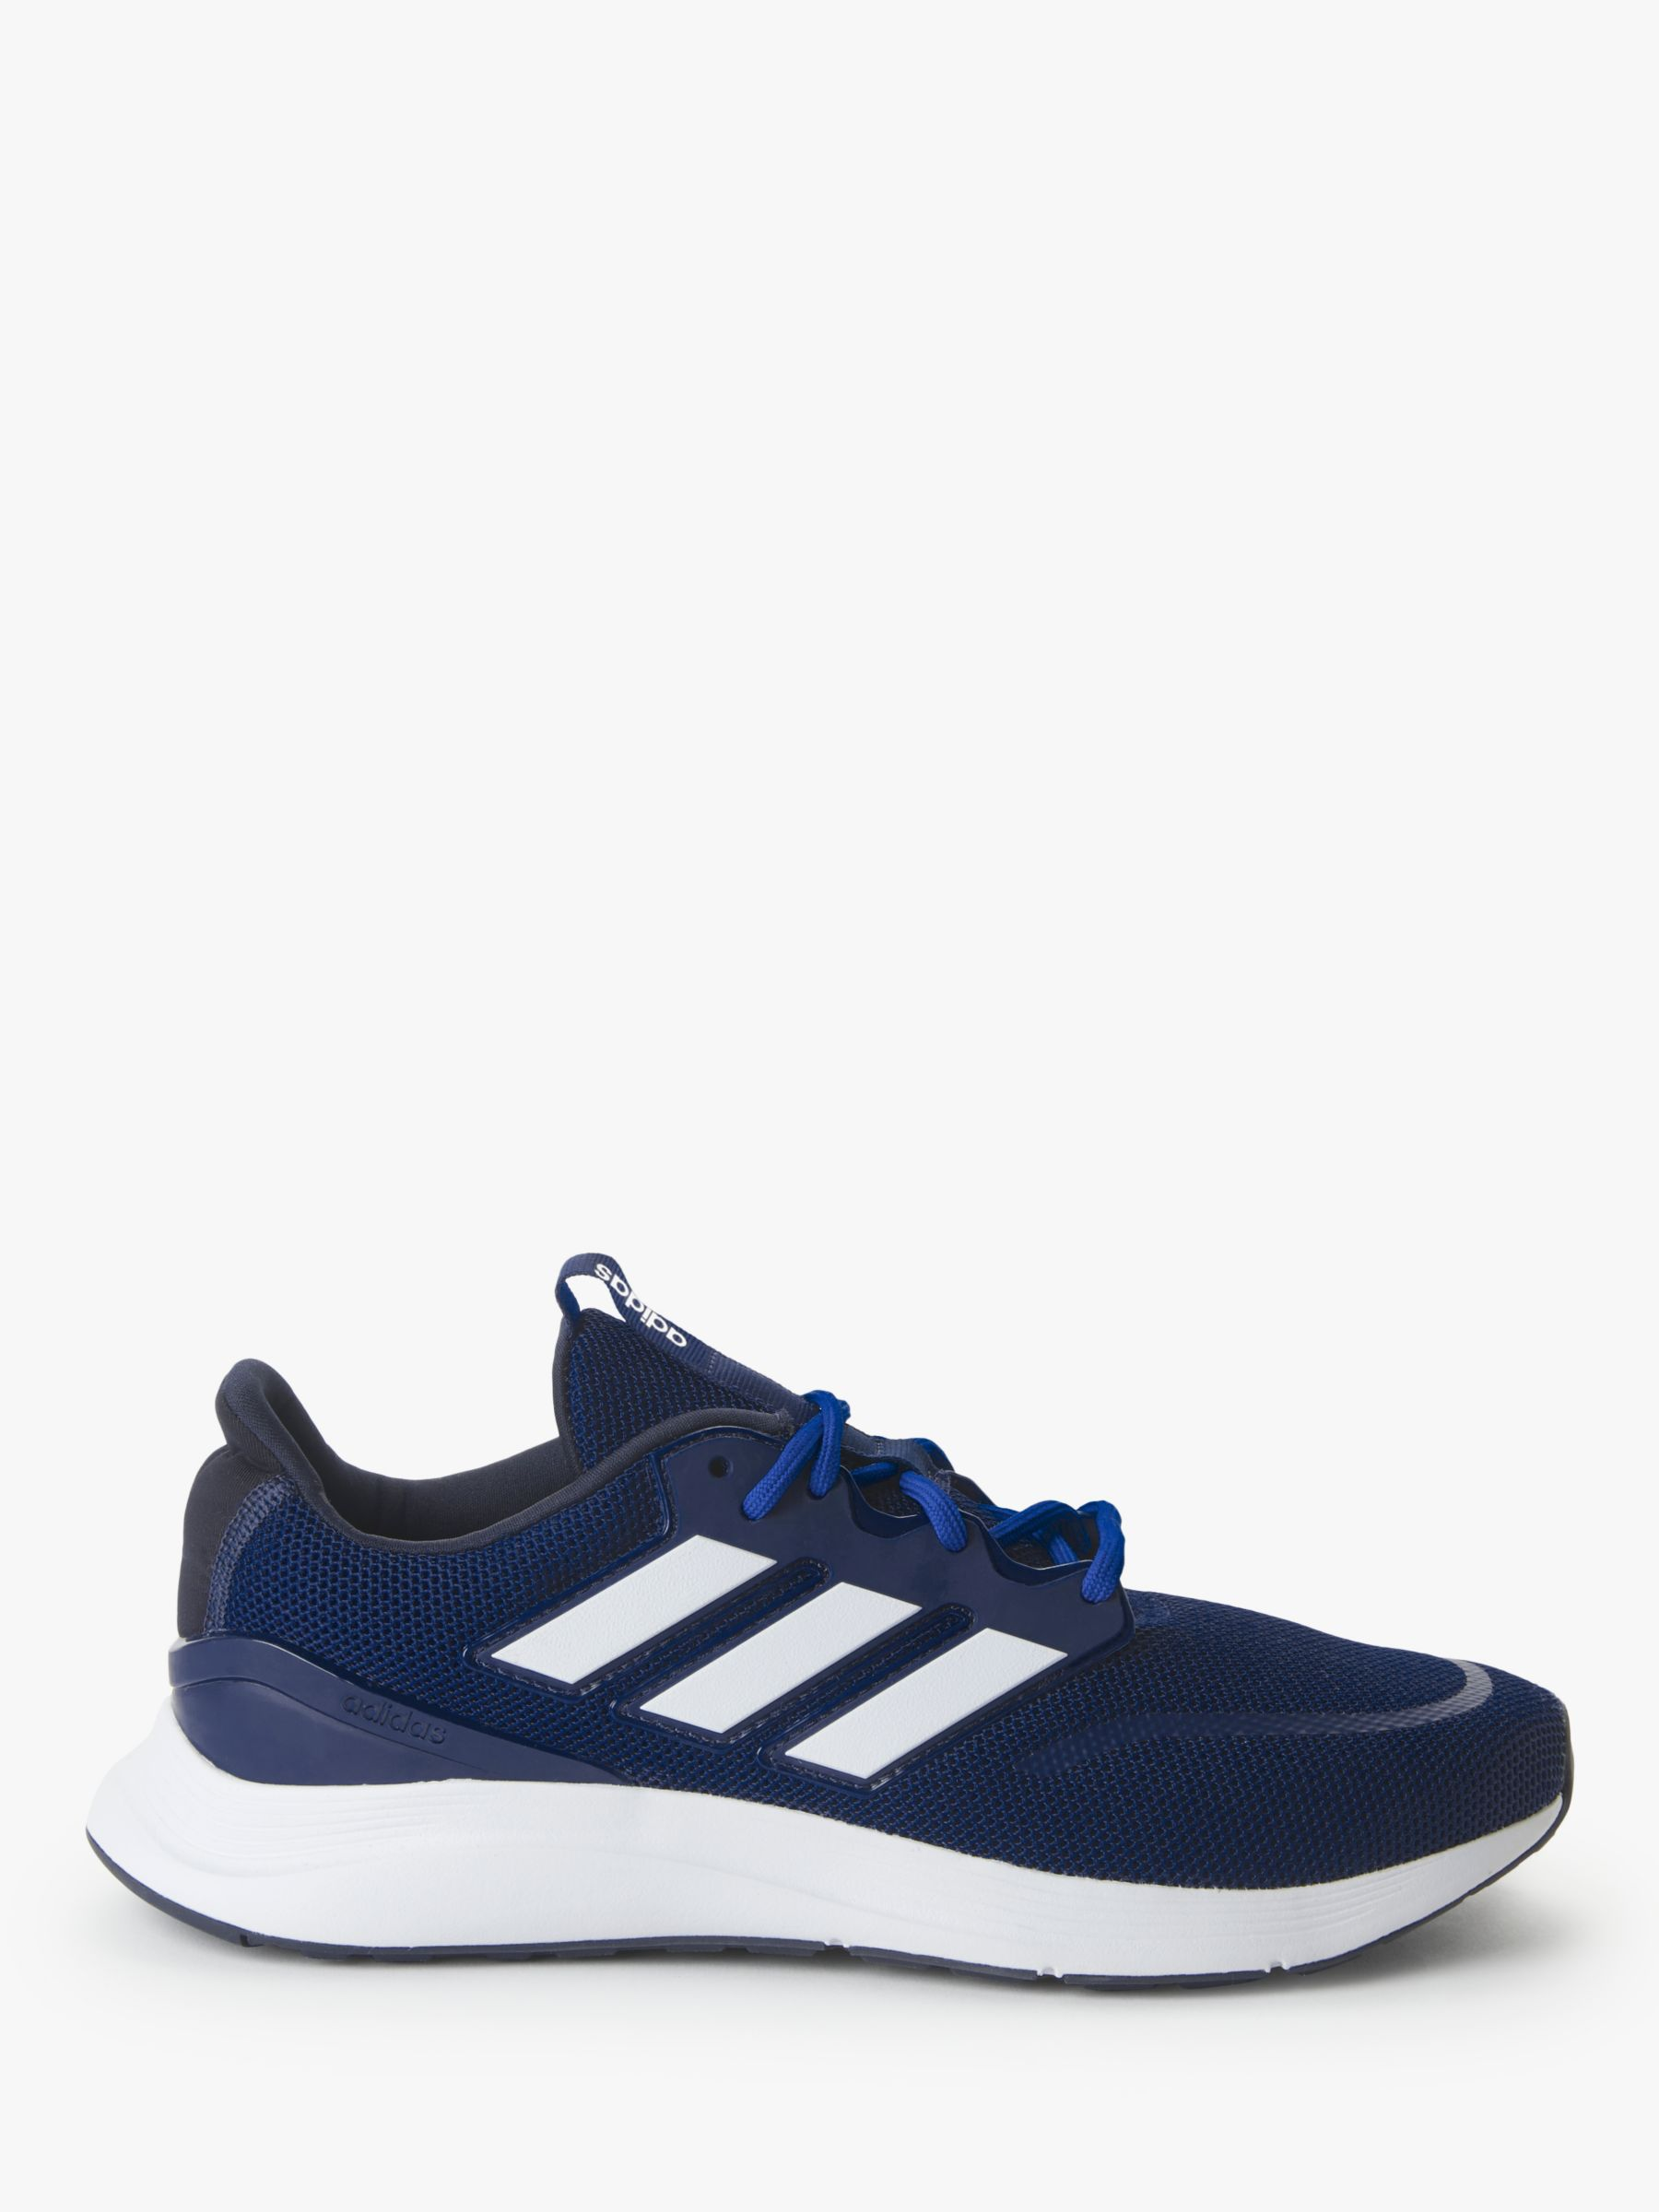 151c4fcac68 adidas Energyfalcon Men's Running Shoes, Dark Blue/FTWR White/Collegiate  Royal